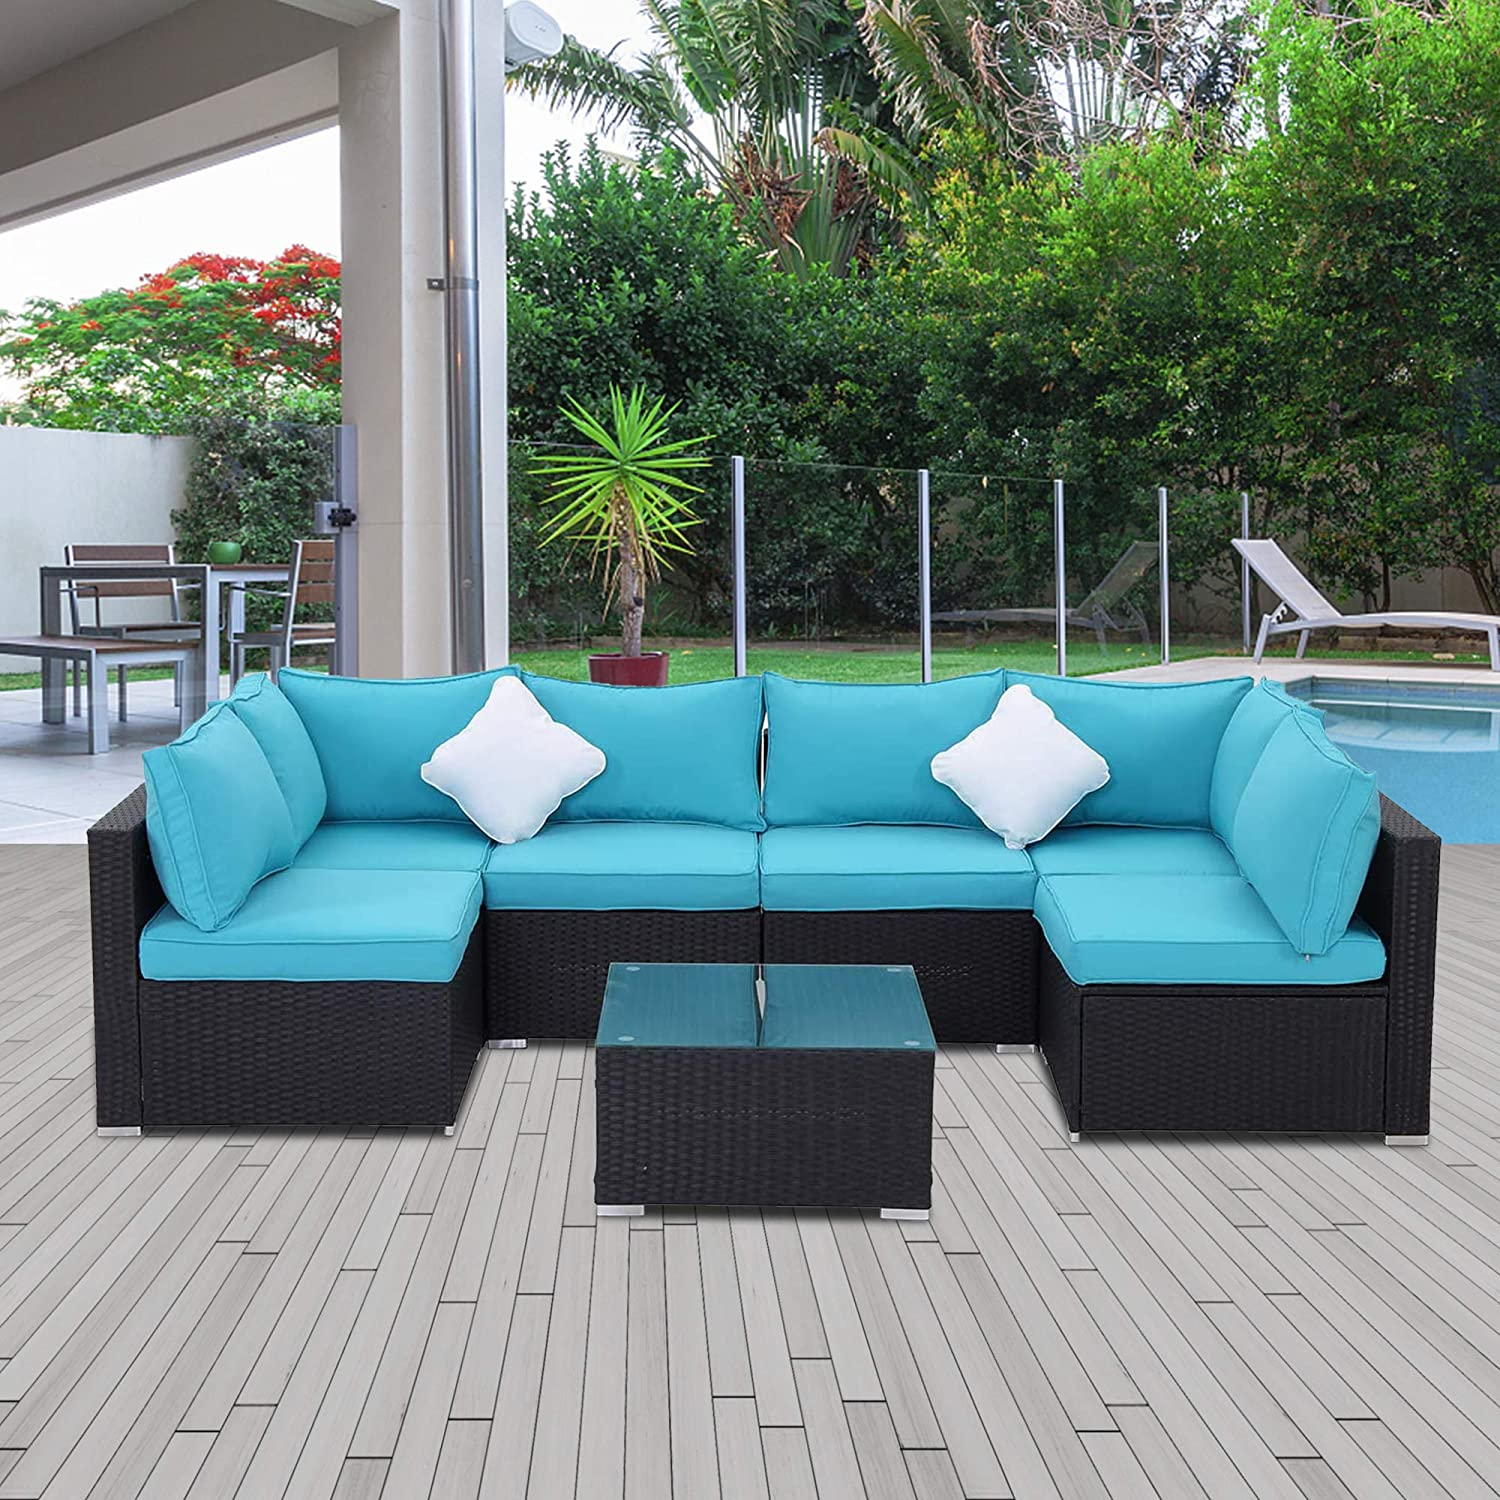 Sunvivi Outdoor 7 Piece Patio All Weather Pe Wicker Furniture Set Outdoor Sectional Conversation Sofa Set With Glass Table Removable Cushions Black Turquoise Furniture Decor